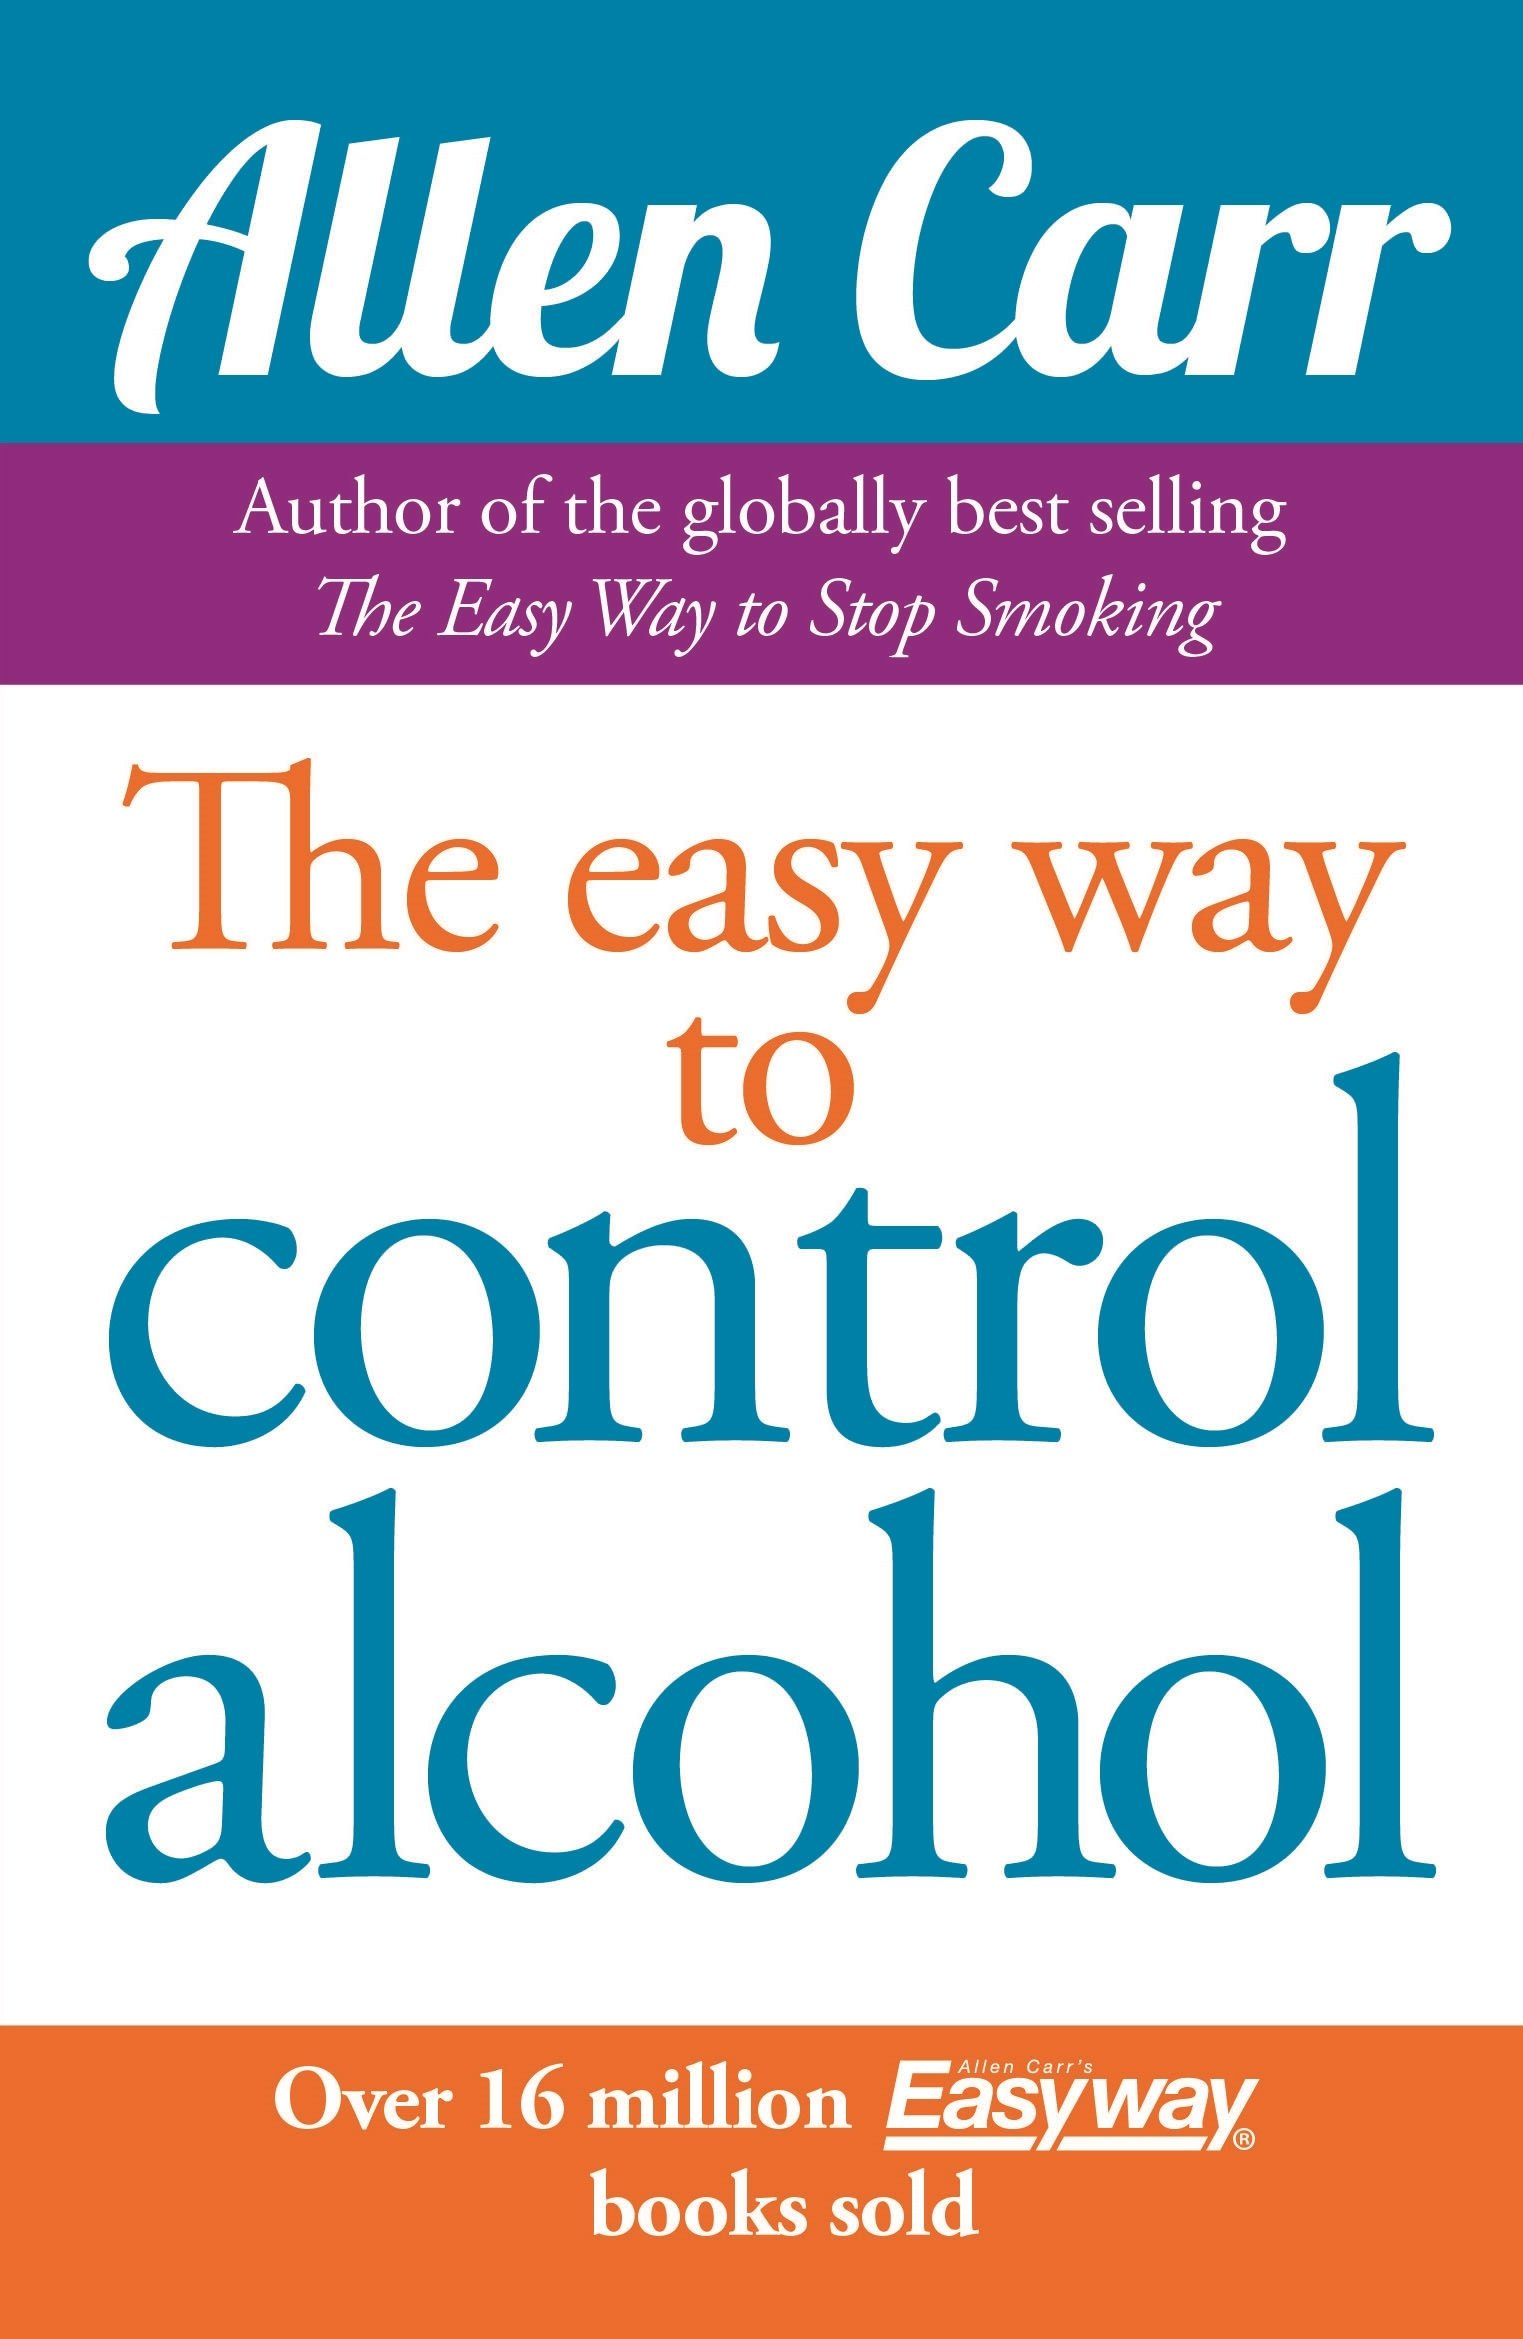 allen carr u0027s easyway to control alcohol allen carr 9781848374652